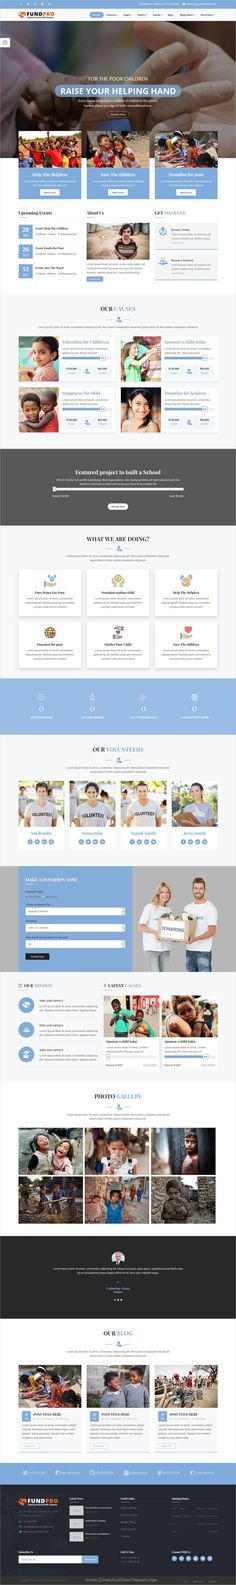 Fundraising is wonderful responsive Bootstrap HTML template for - ngo templates